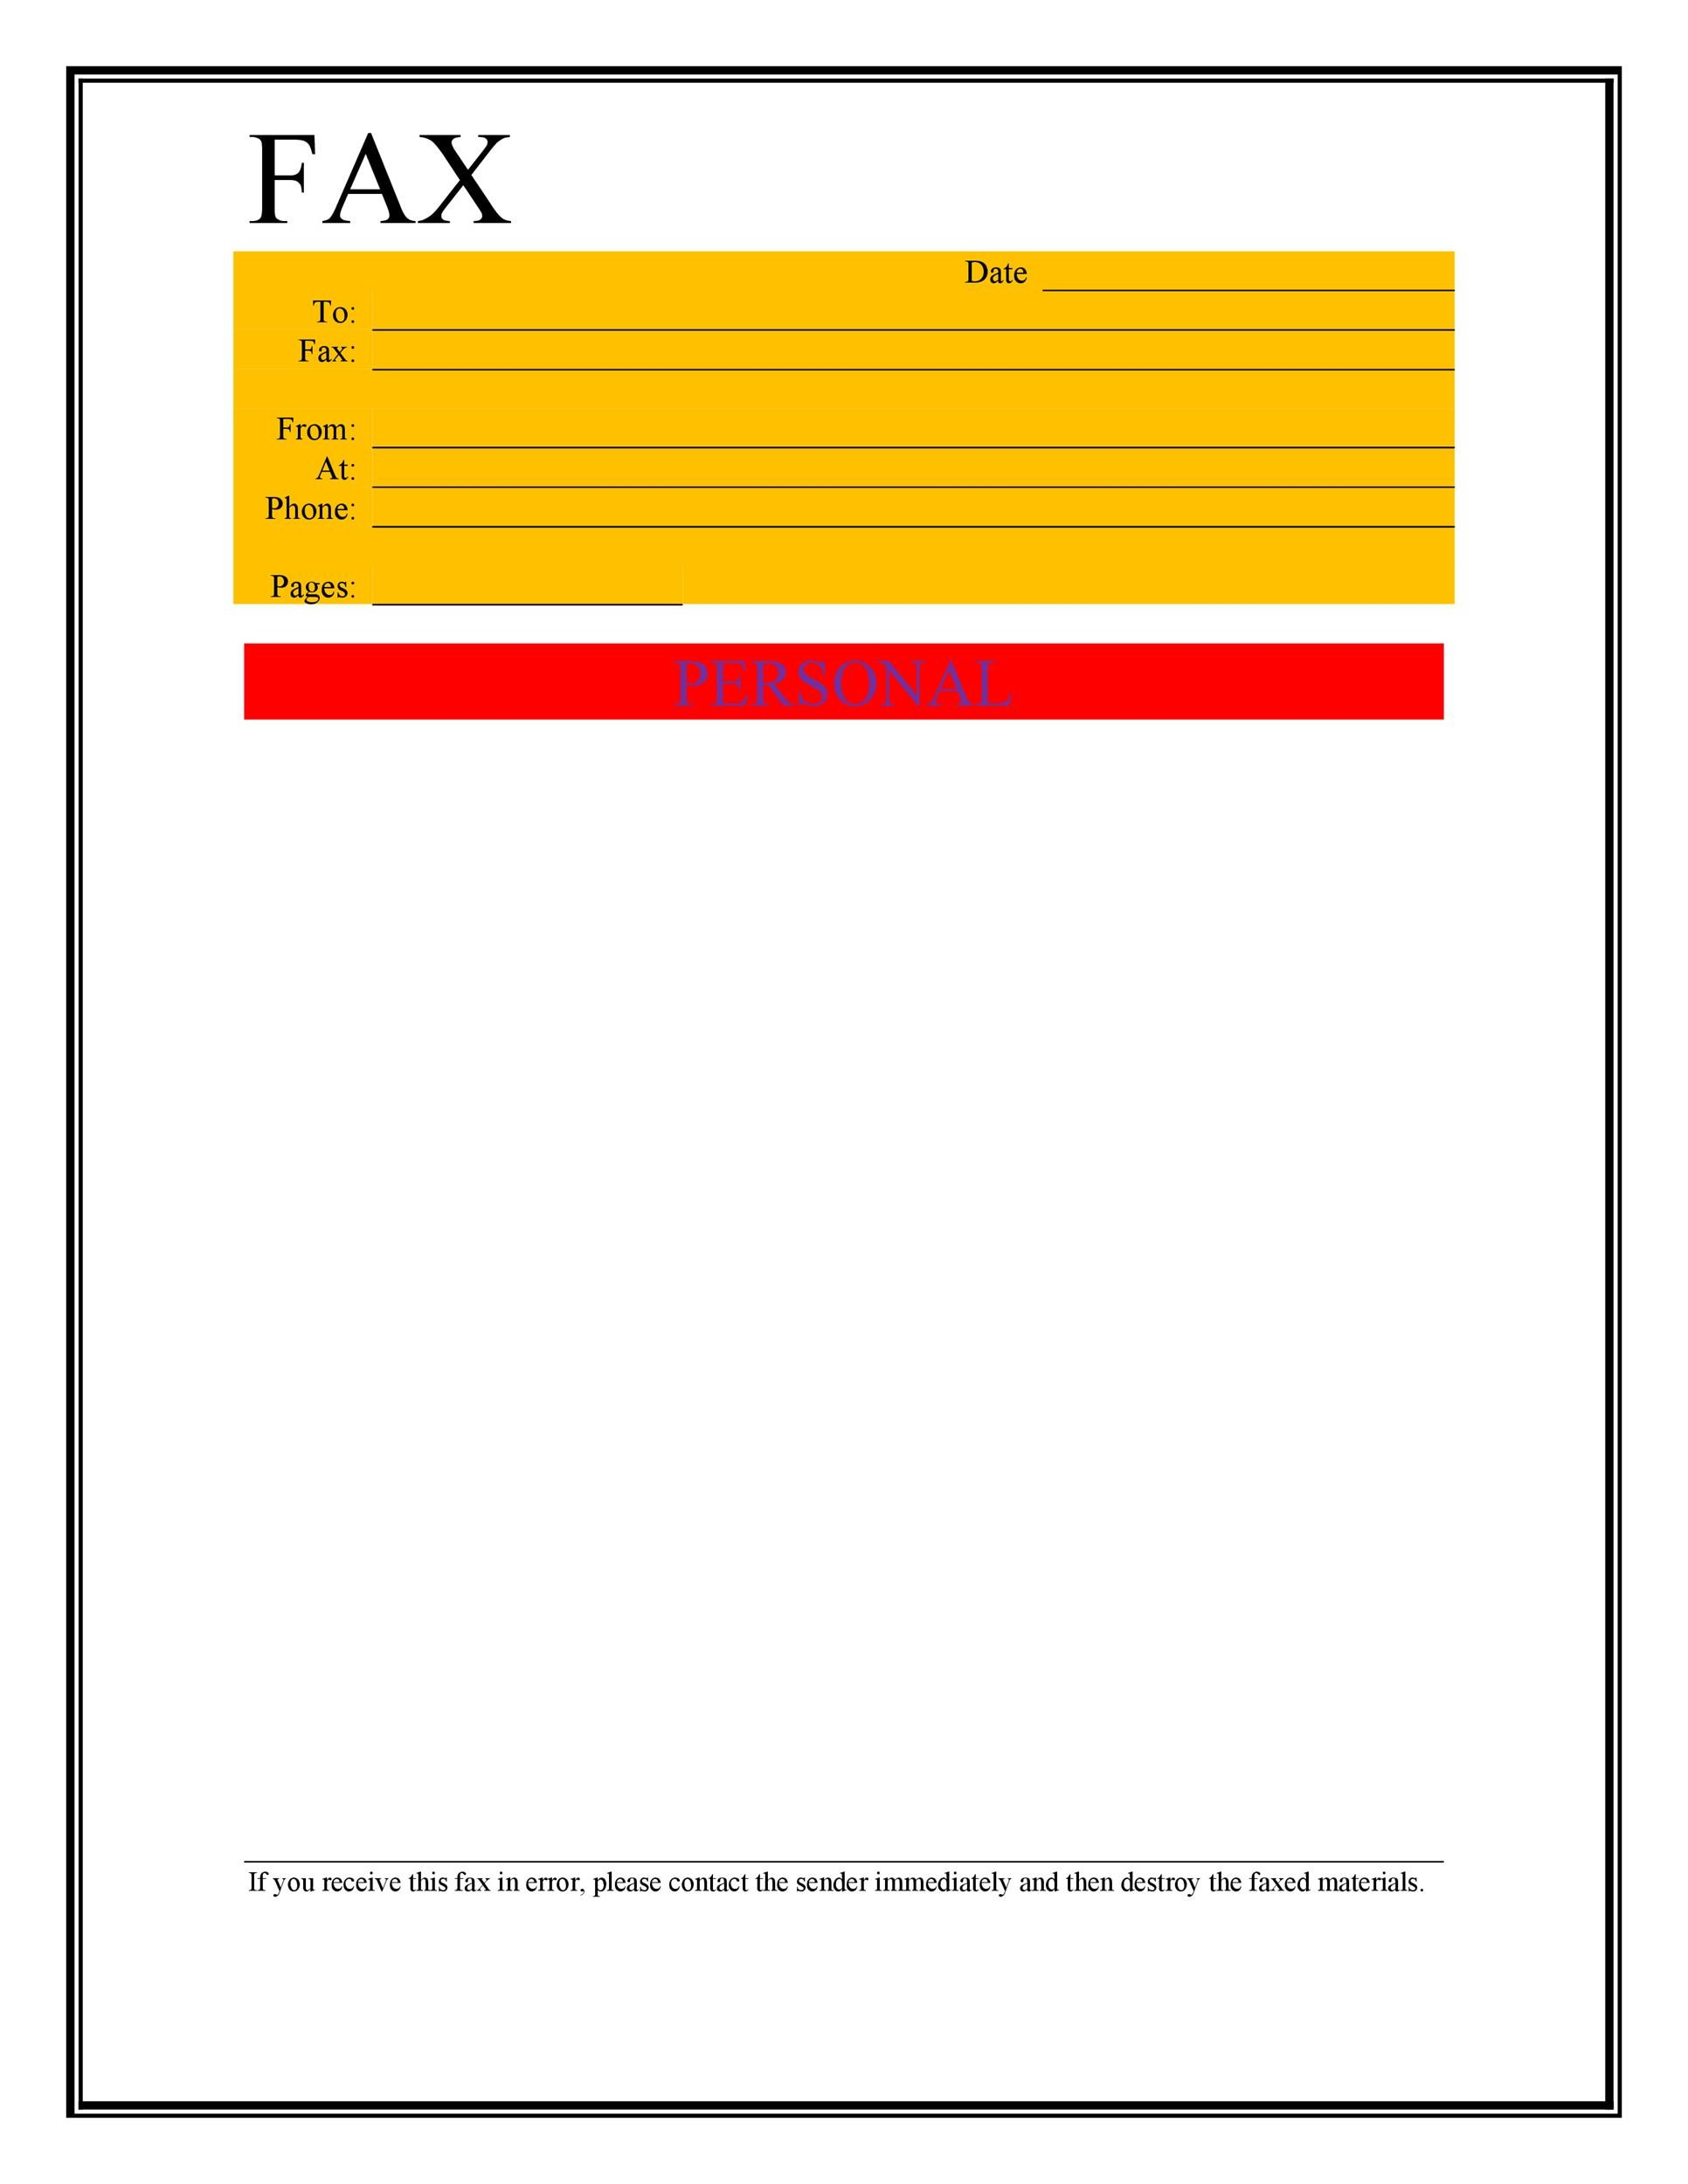 Free Fax Cover Sheet Template 05